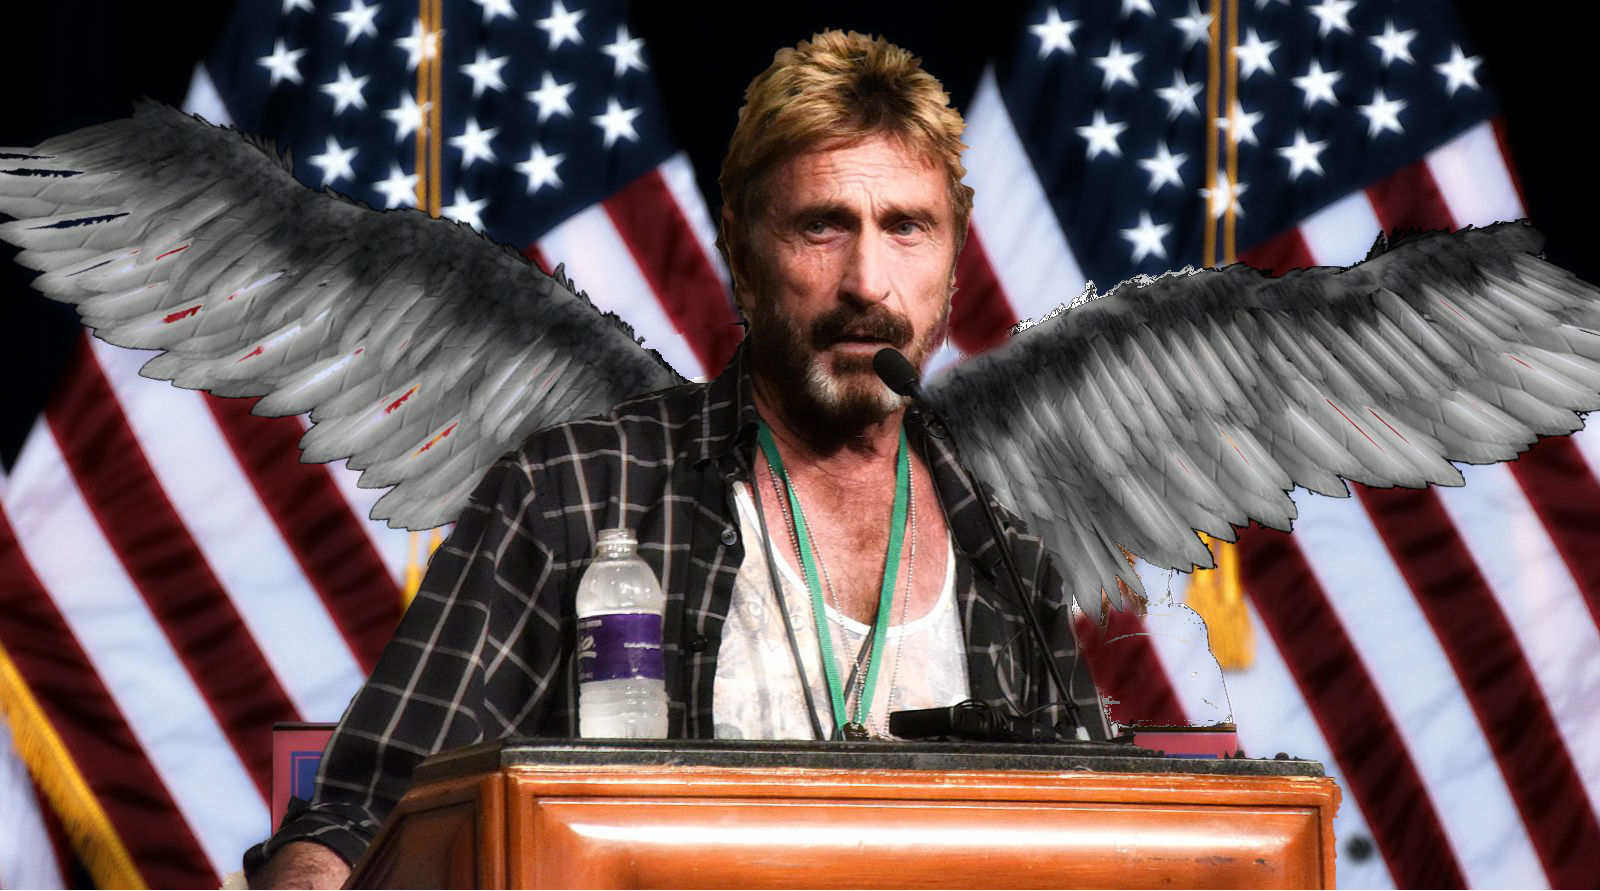 McAfee The Freedom Luvr